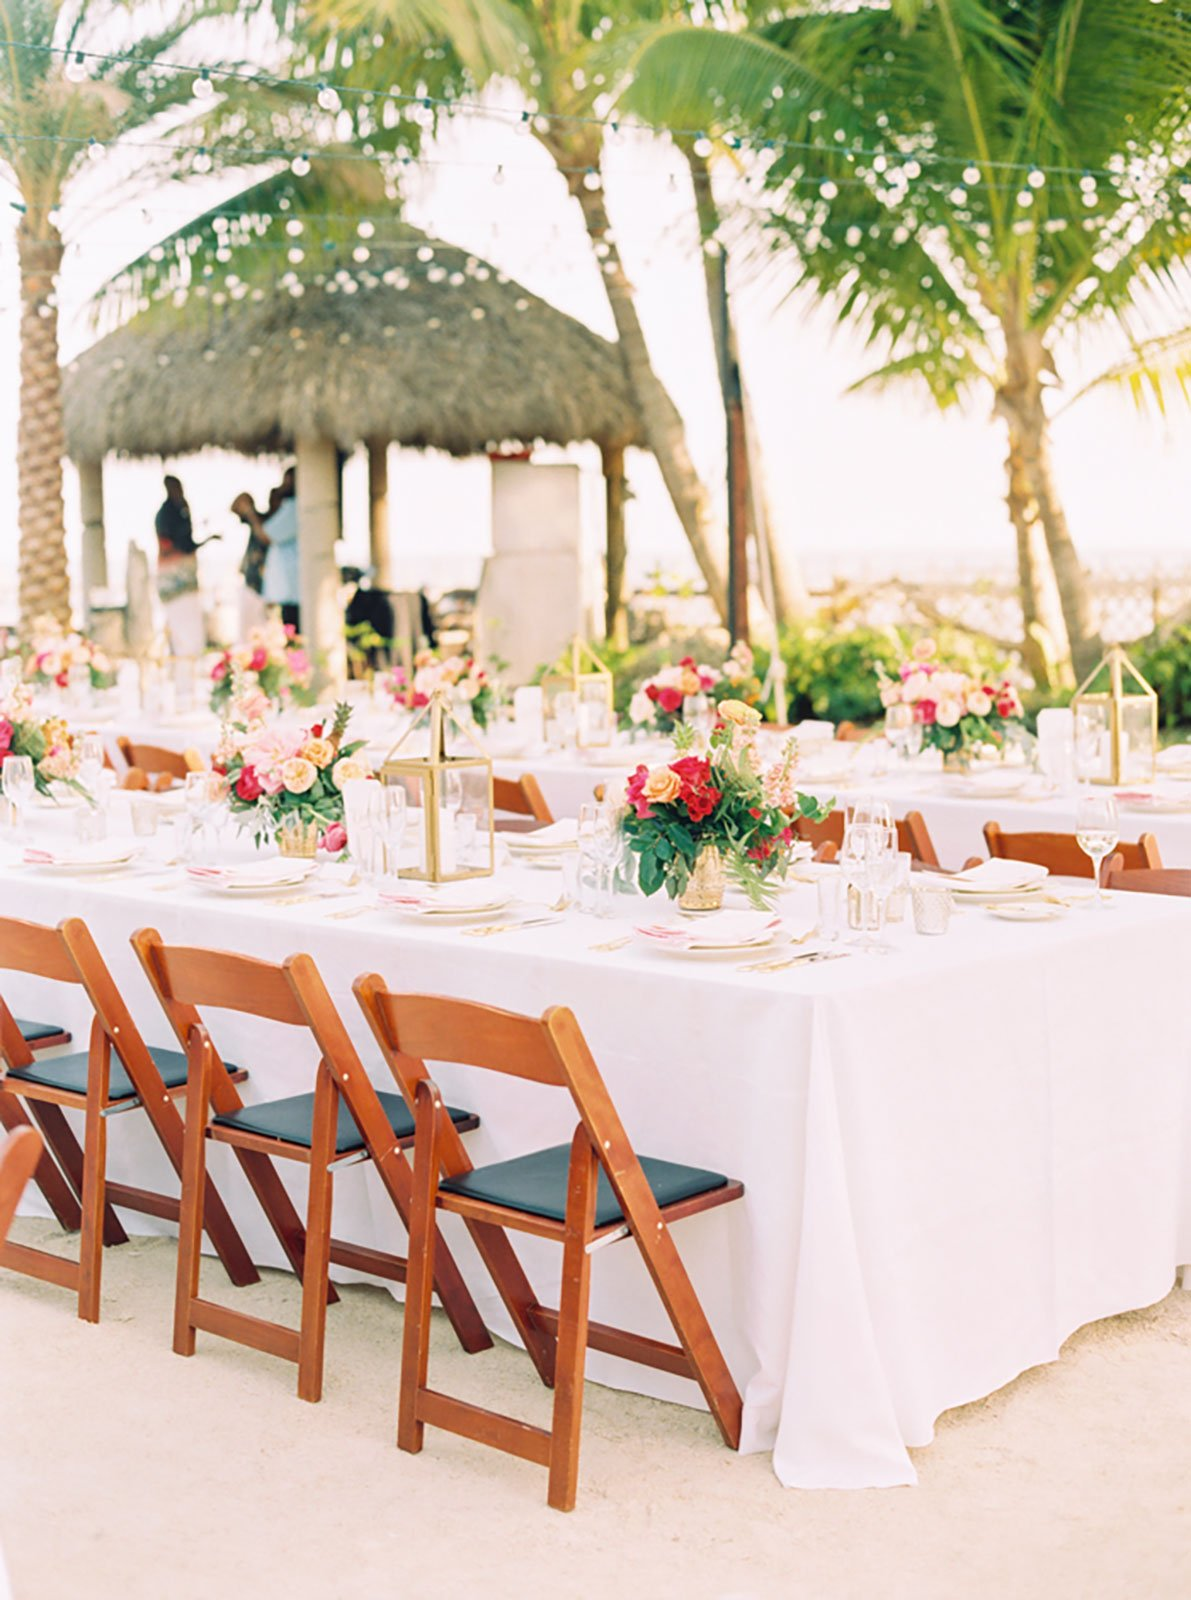 String lights were strewn over the reception to highlight the beach wedding space without obstructing views of the lush tropical landscape